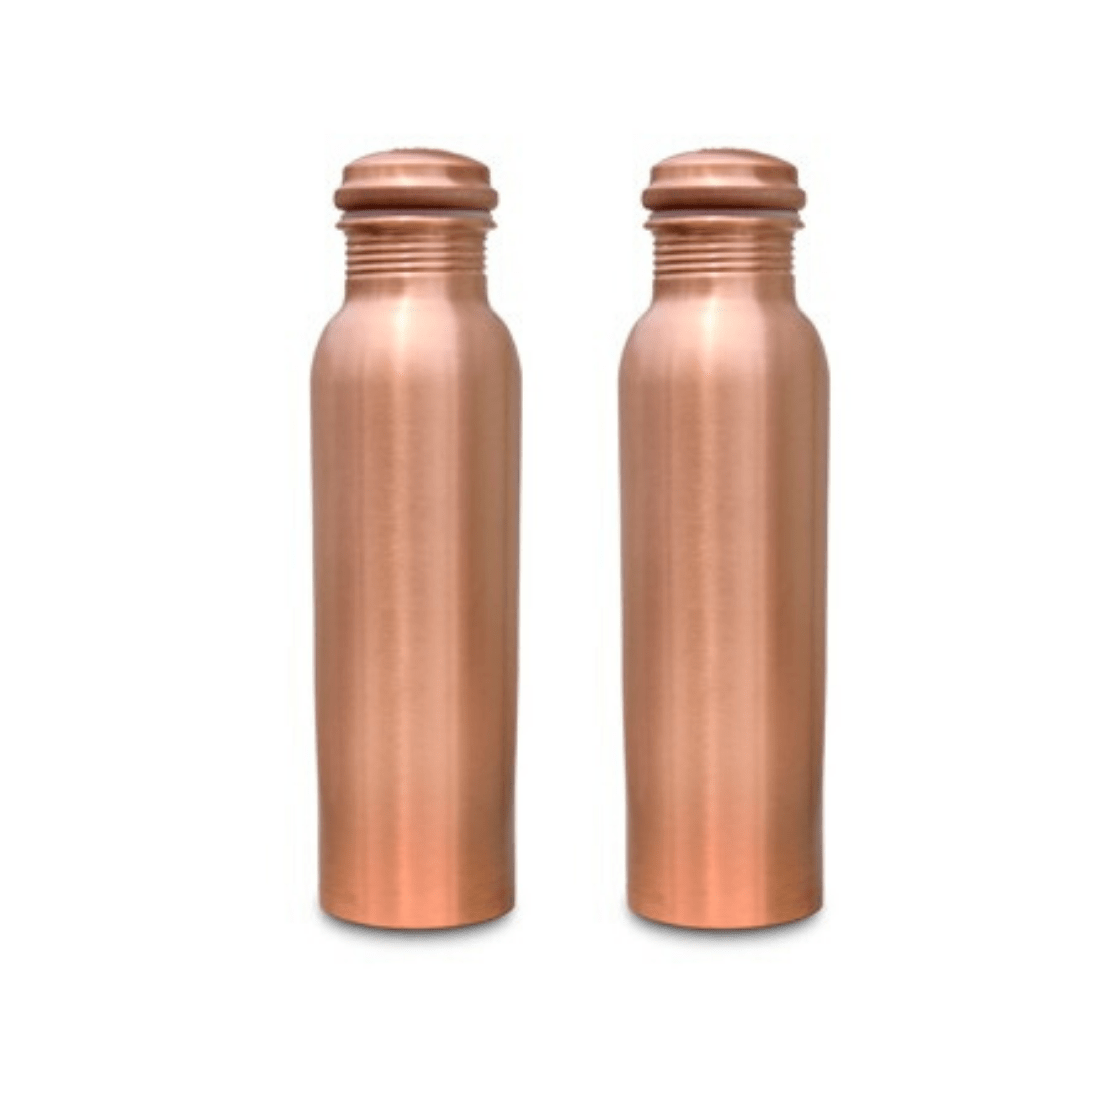 JIVA Combo of Copper Bottles (Pack of 2) at Rs.1199 | Flat 16% Off